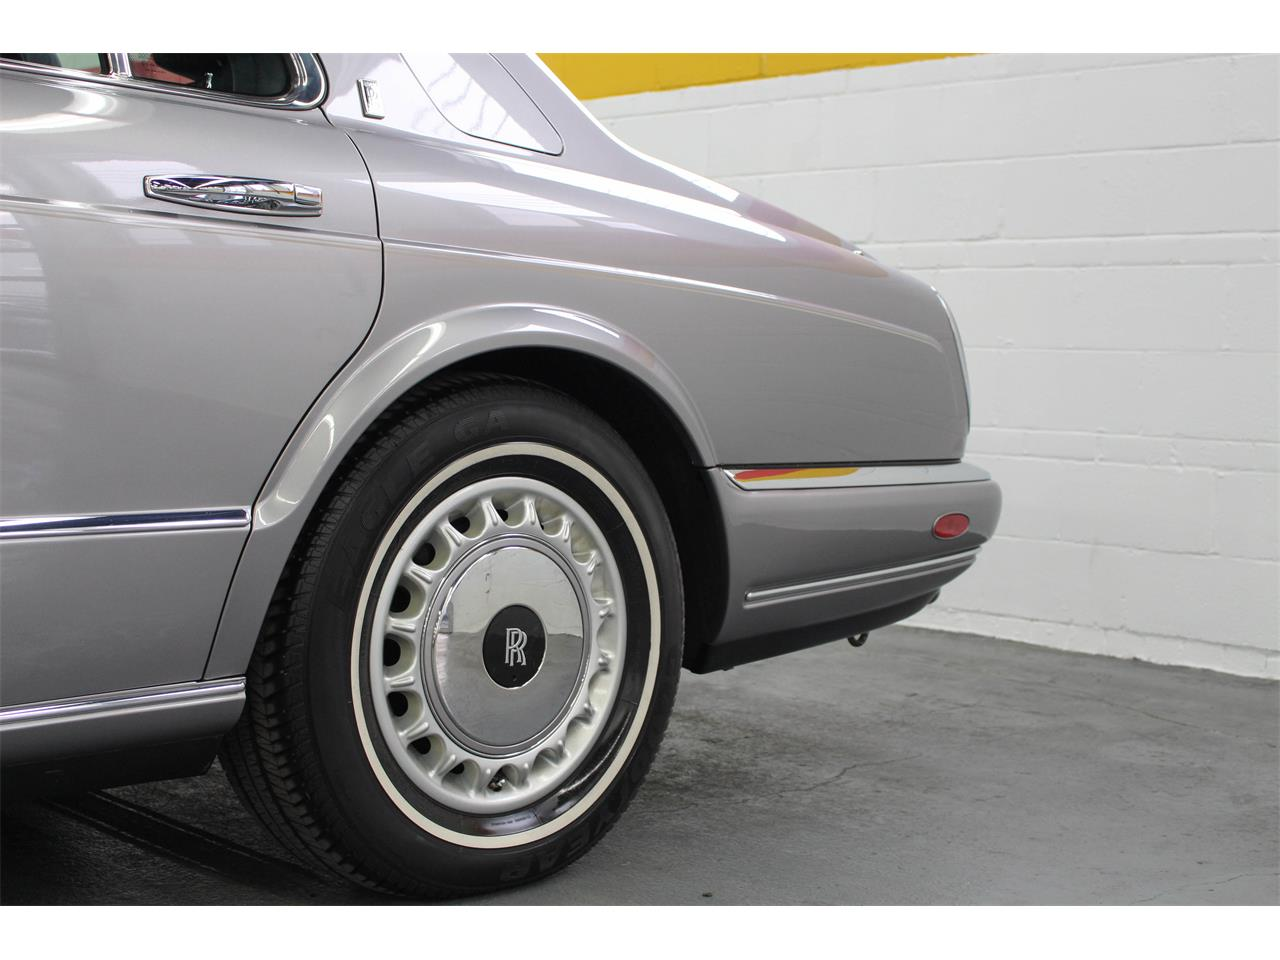 Large Picture of '99 Rolls-Royce Silver Seraph located in Quebec Offered by John Scotti Classic Cars - M1YP